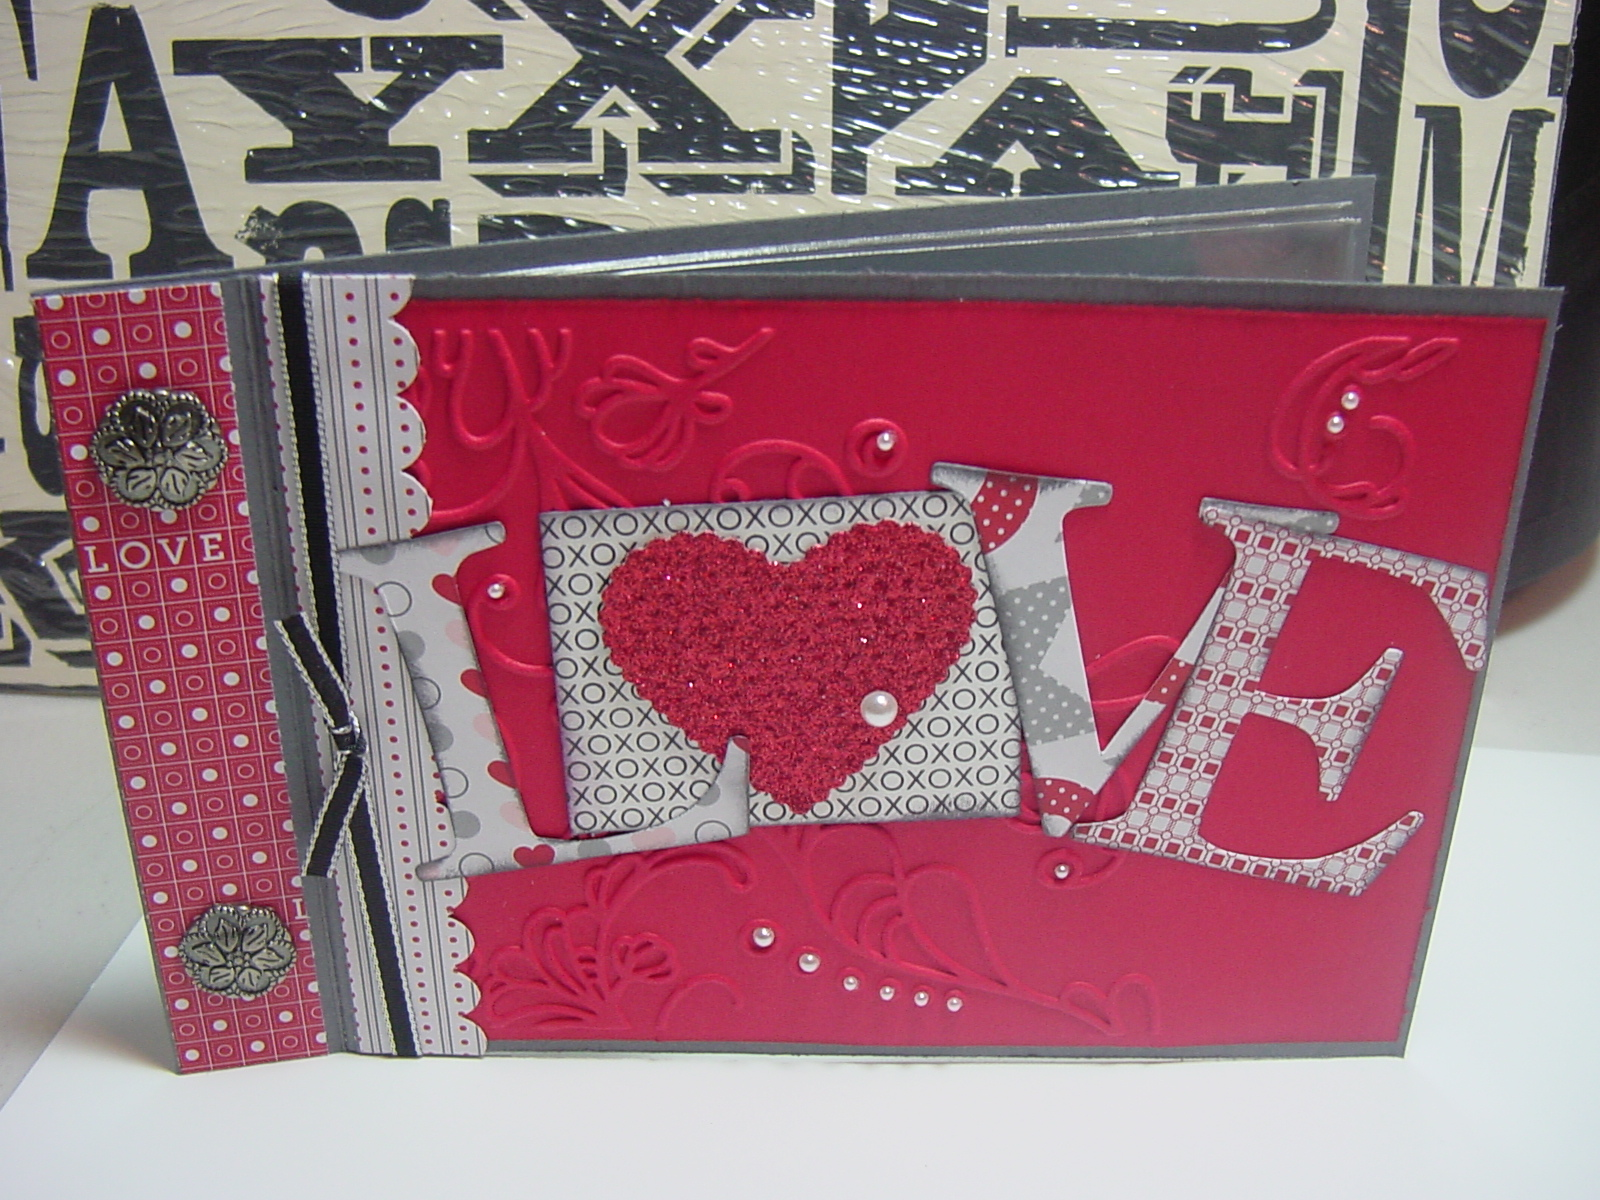 How to make scrapbook simple - Love This Simple Scrapbook Which Is Great For A Best Friend Or A Boyfriend Or A Spouse Easy Easy To Make